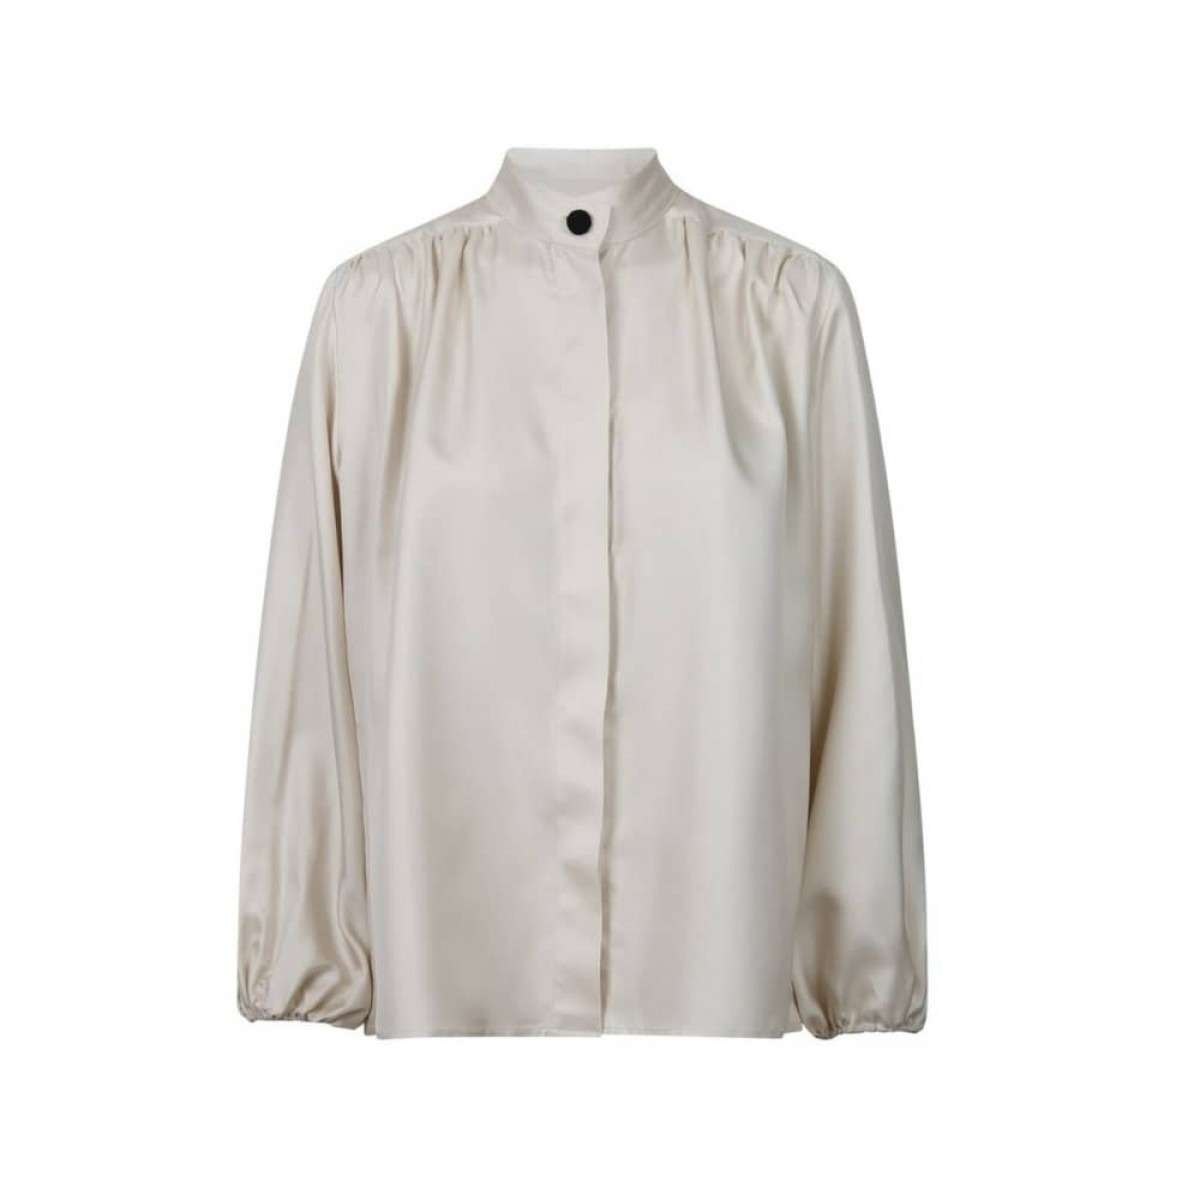 fifi bluse - beige - front